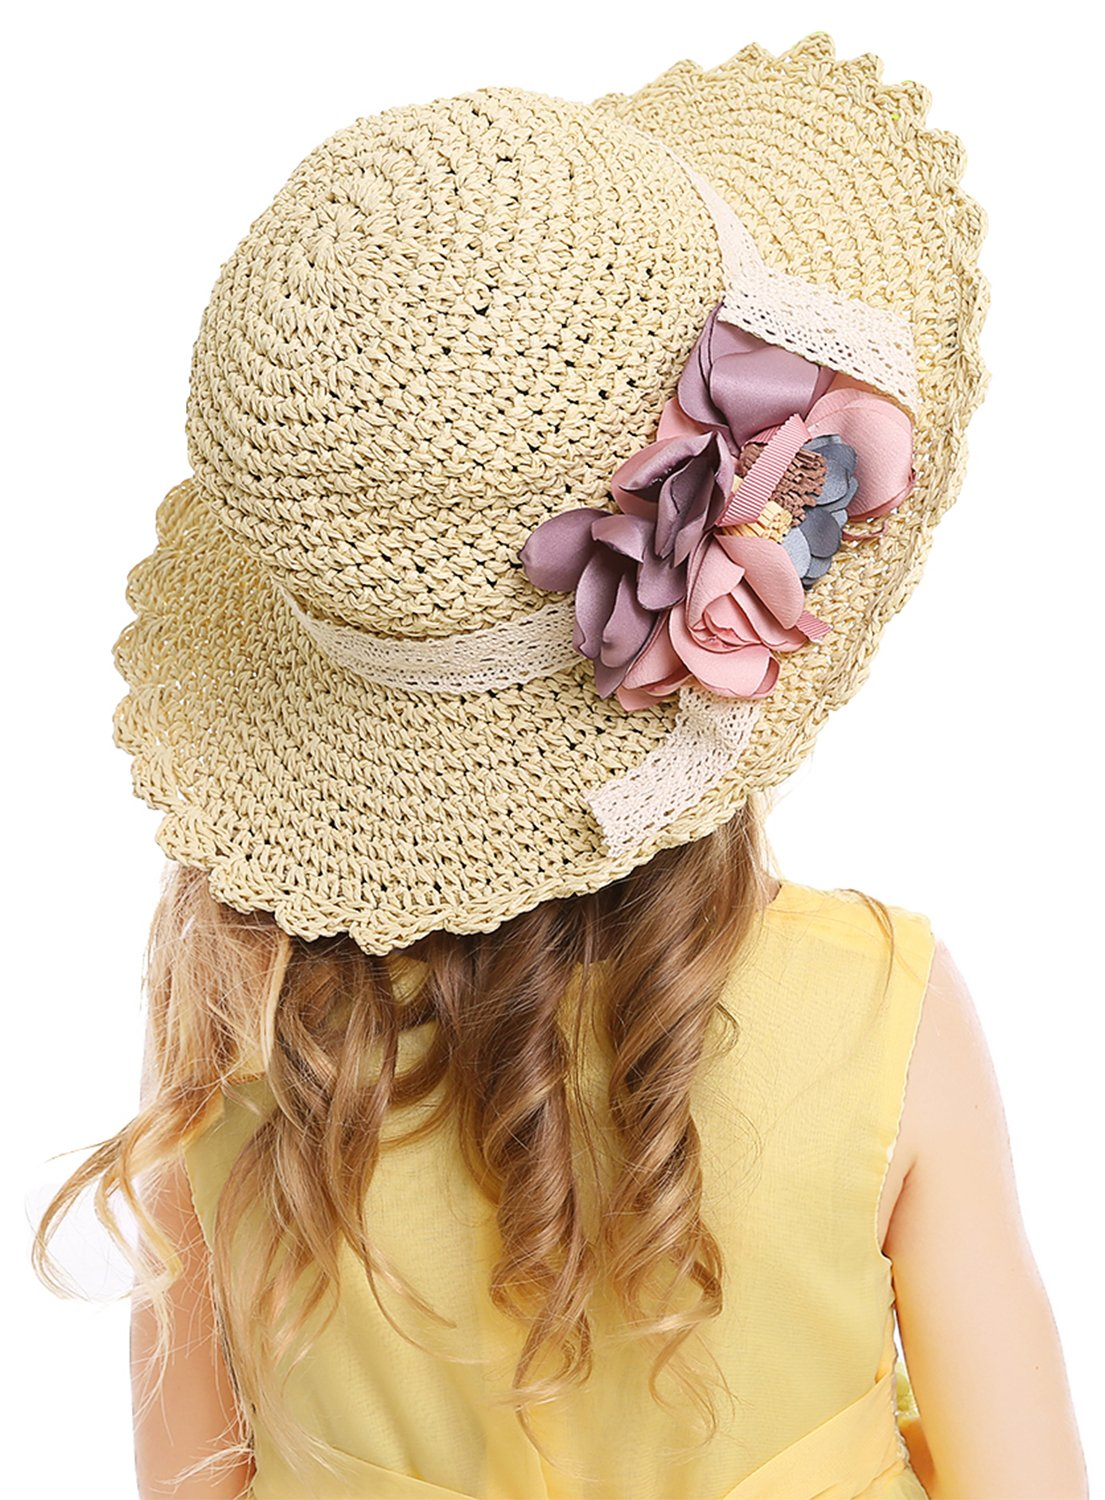 Bienvenu Kids Girl Summer Straw Hat with Flowers Beach Sun Protection Hats,Style2_Beige